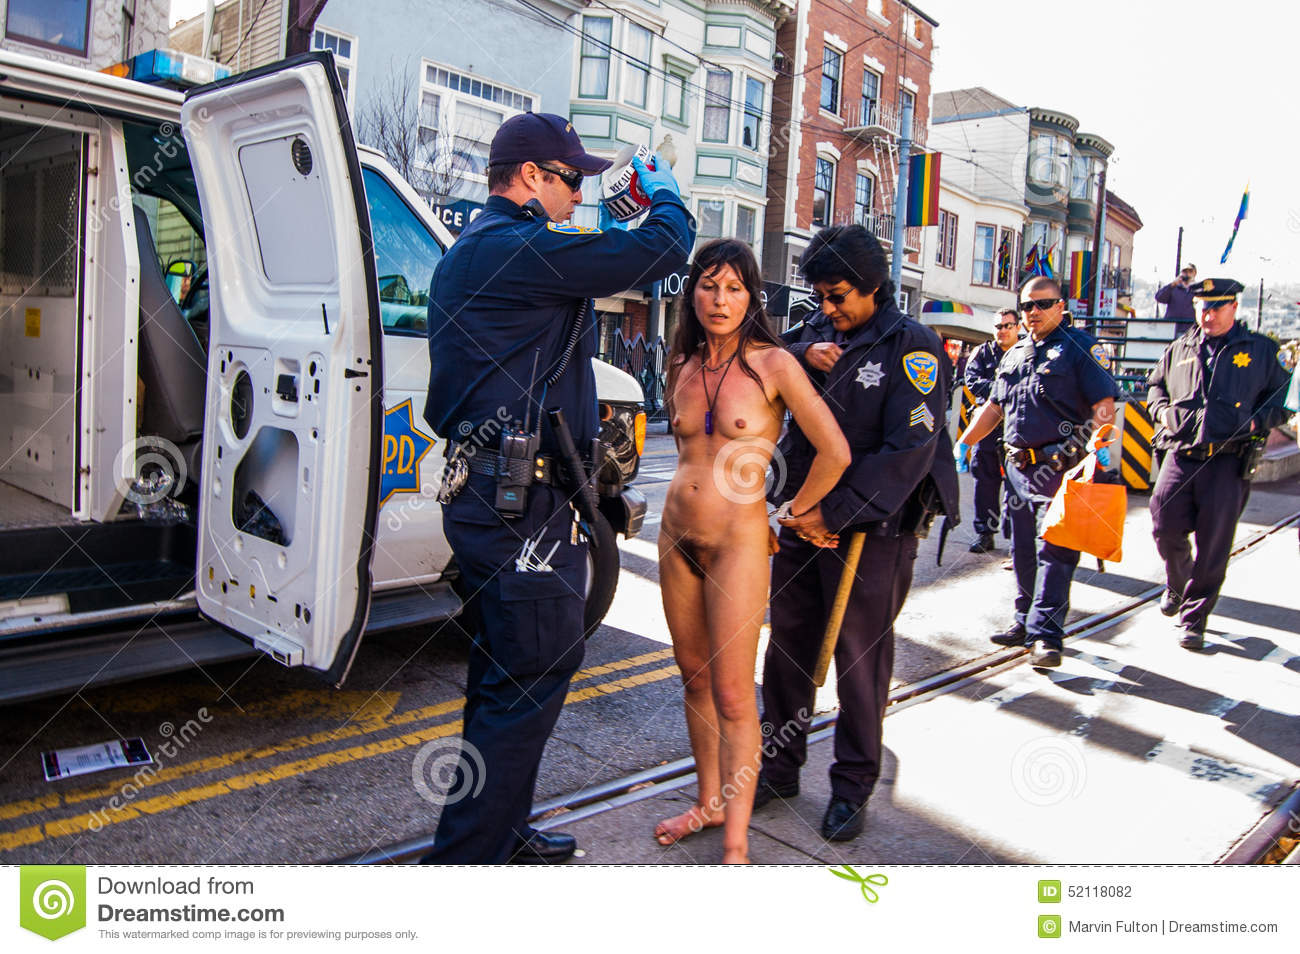 Soooooo body naked part protest nice fucking